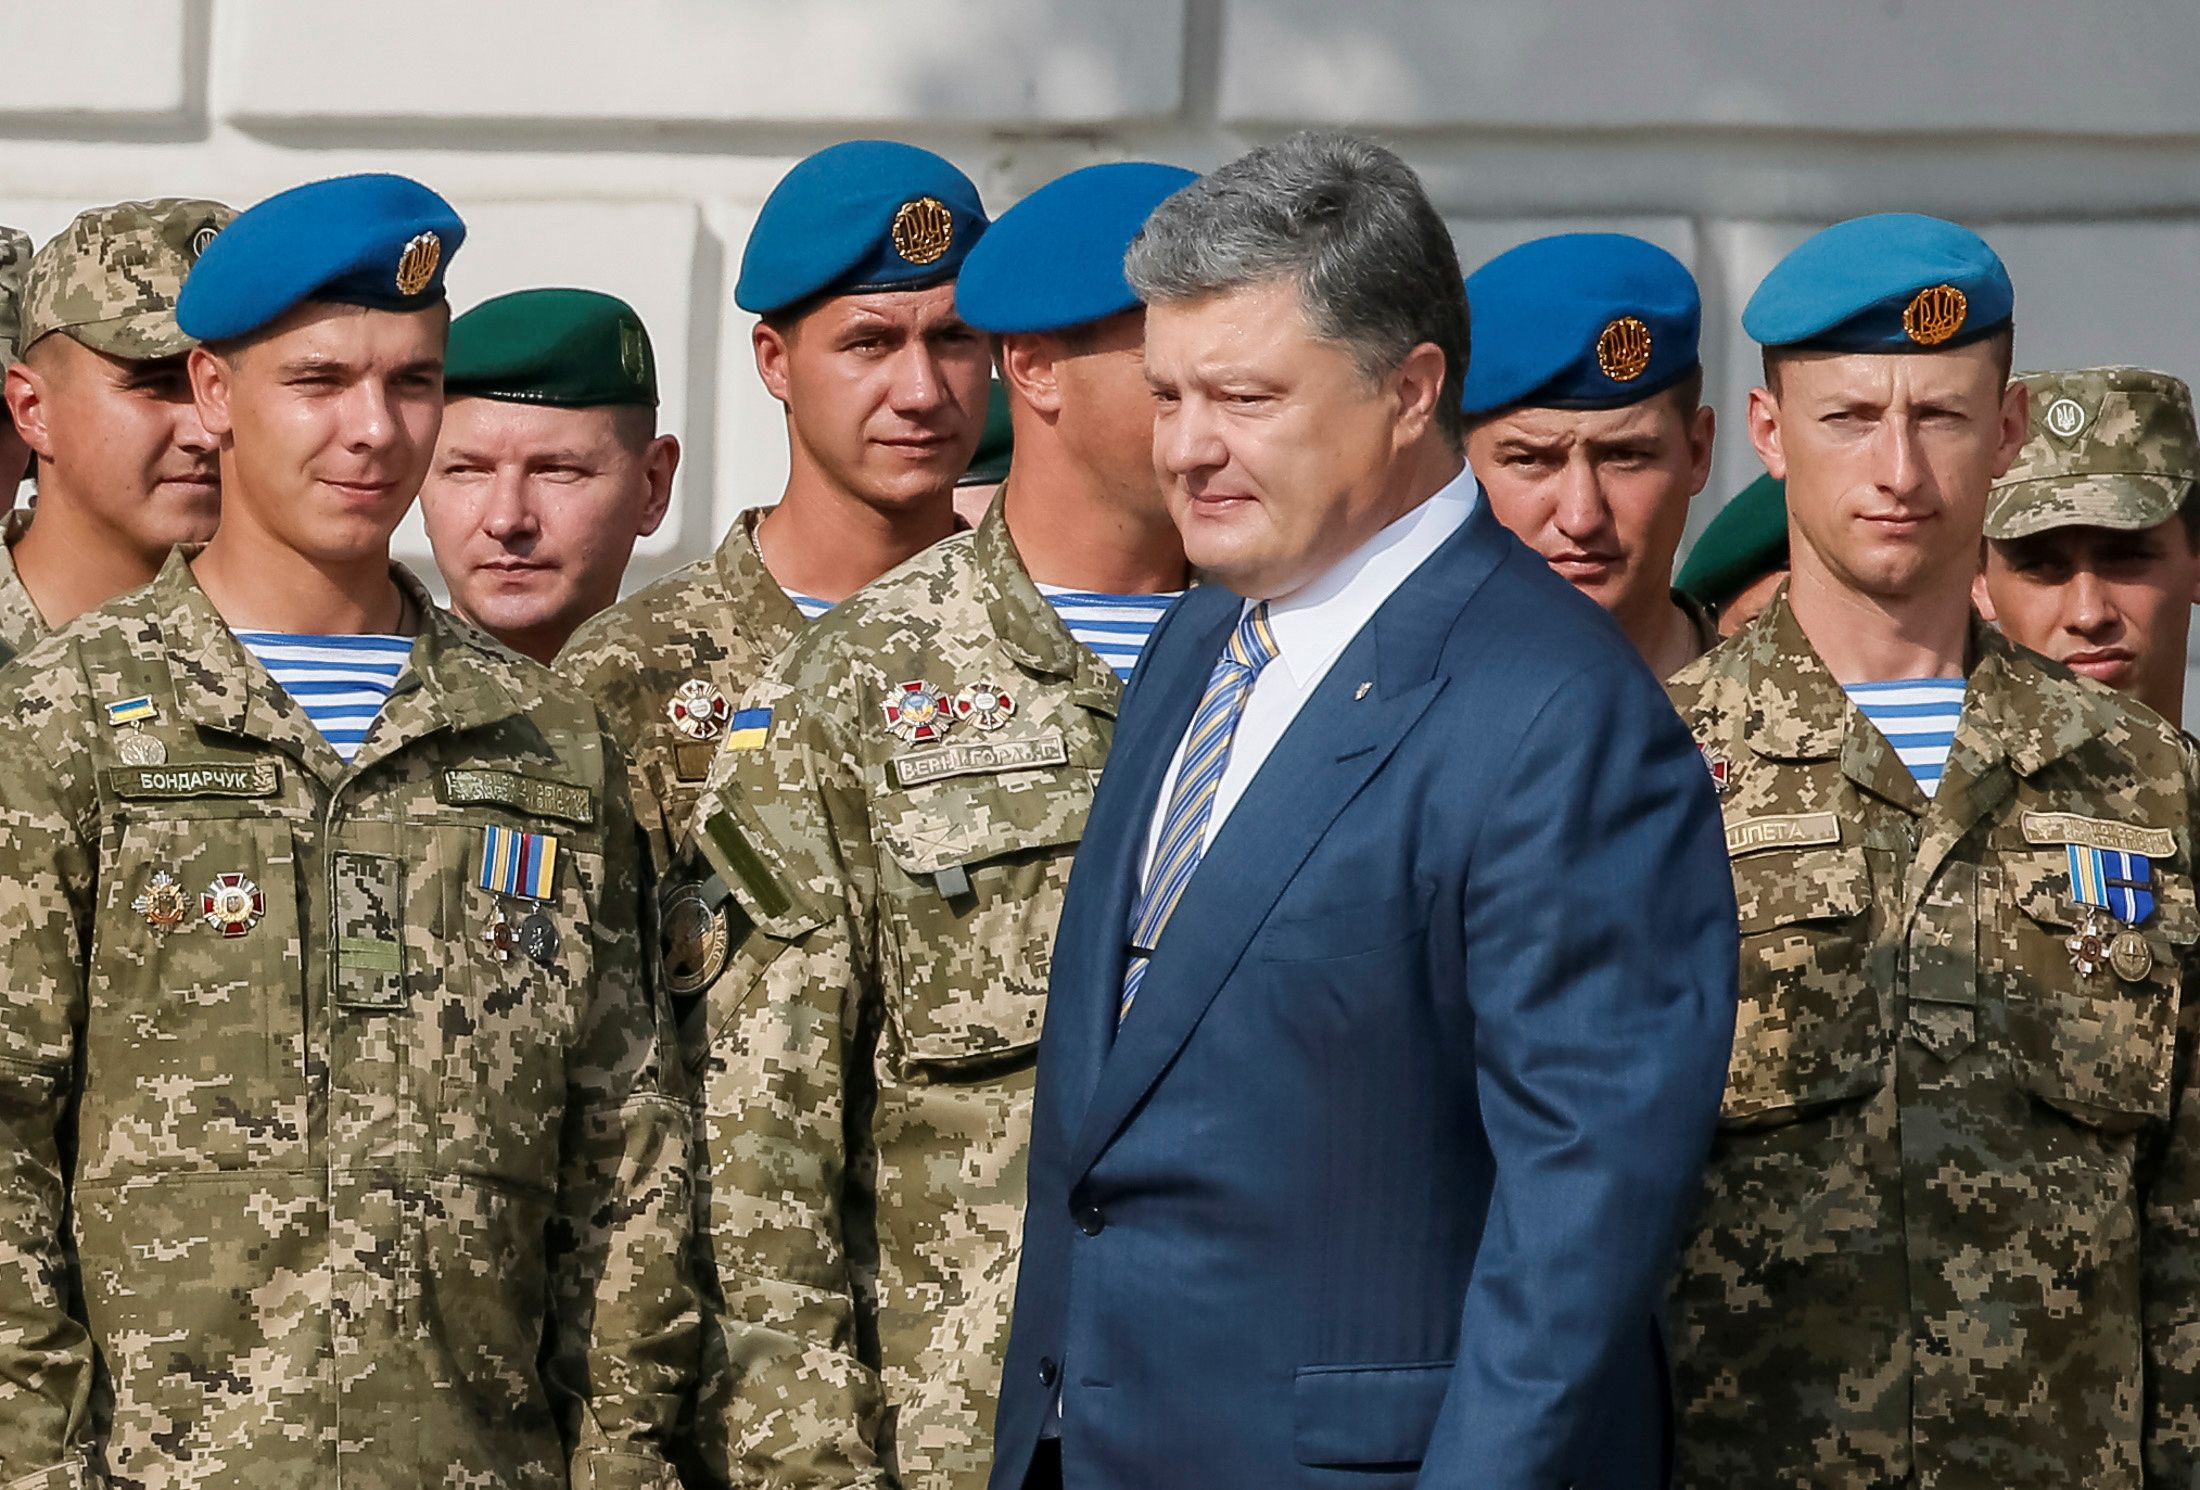 Poroshenko and Ukrainian soldiers